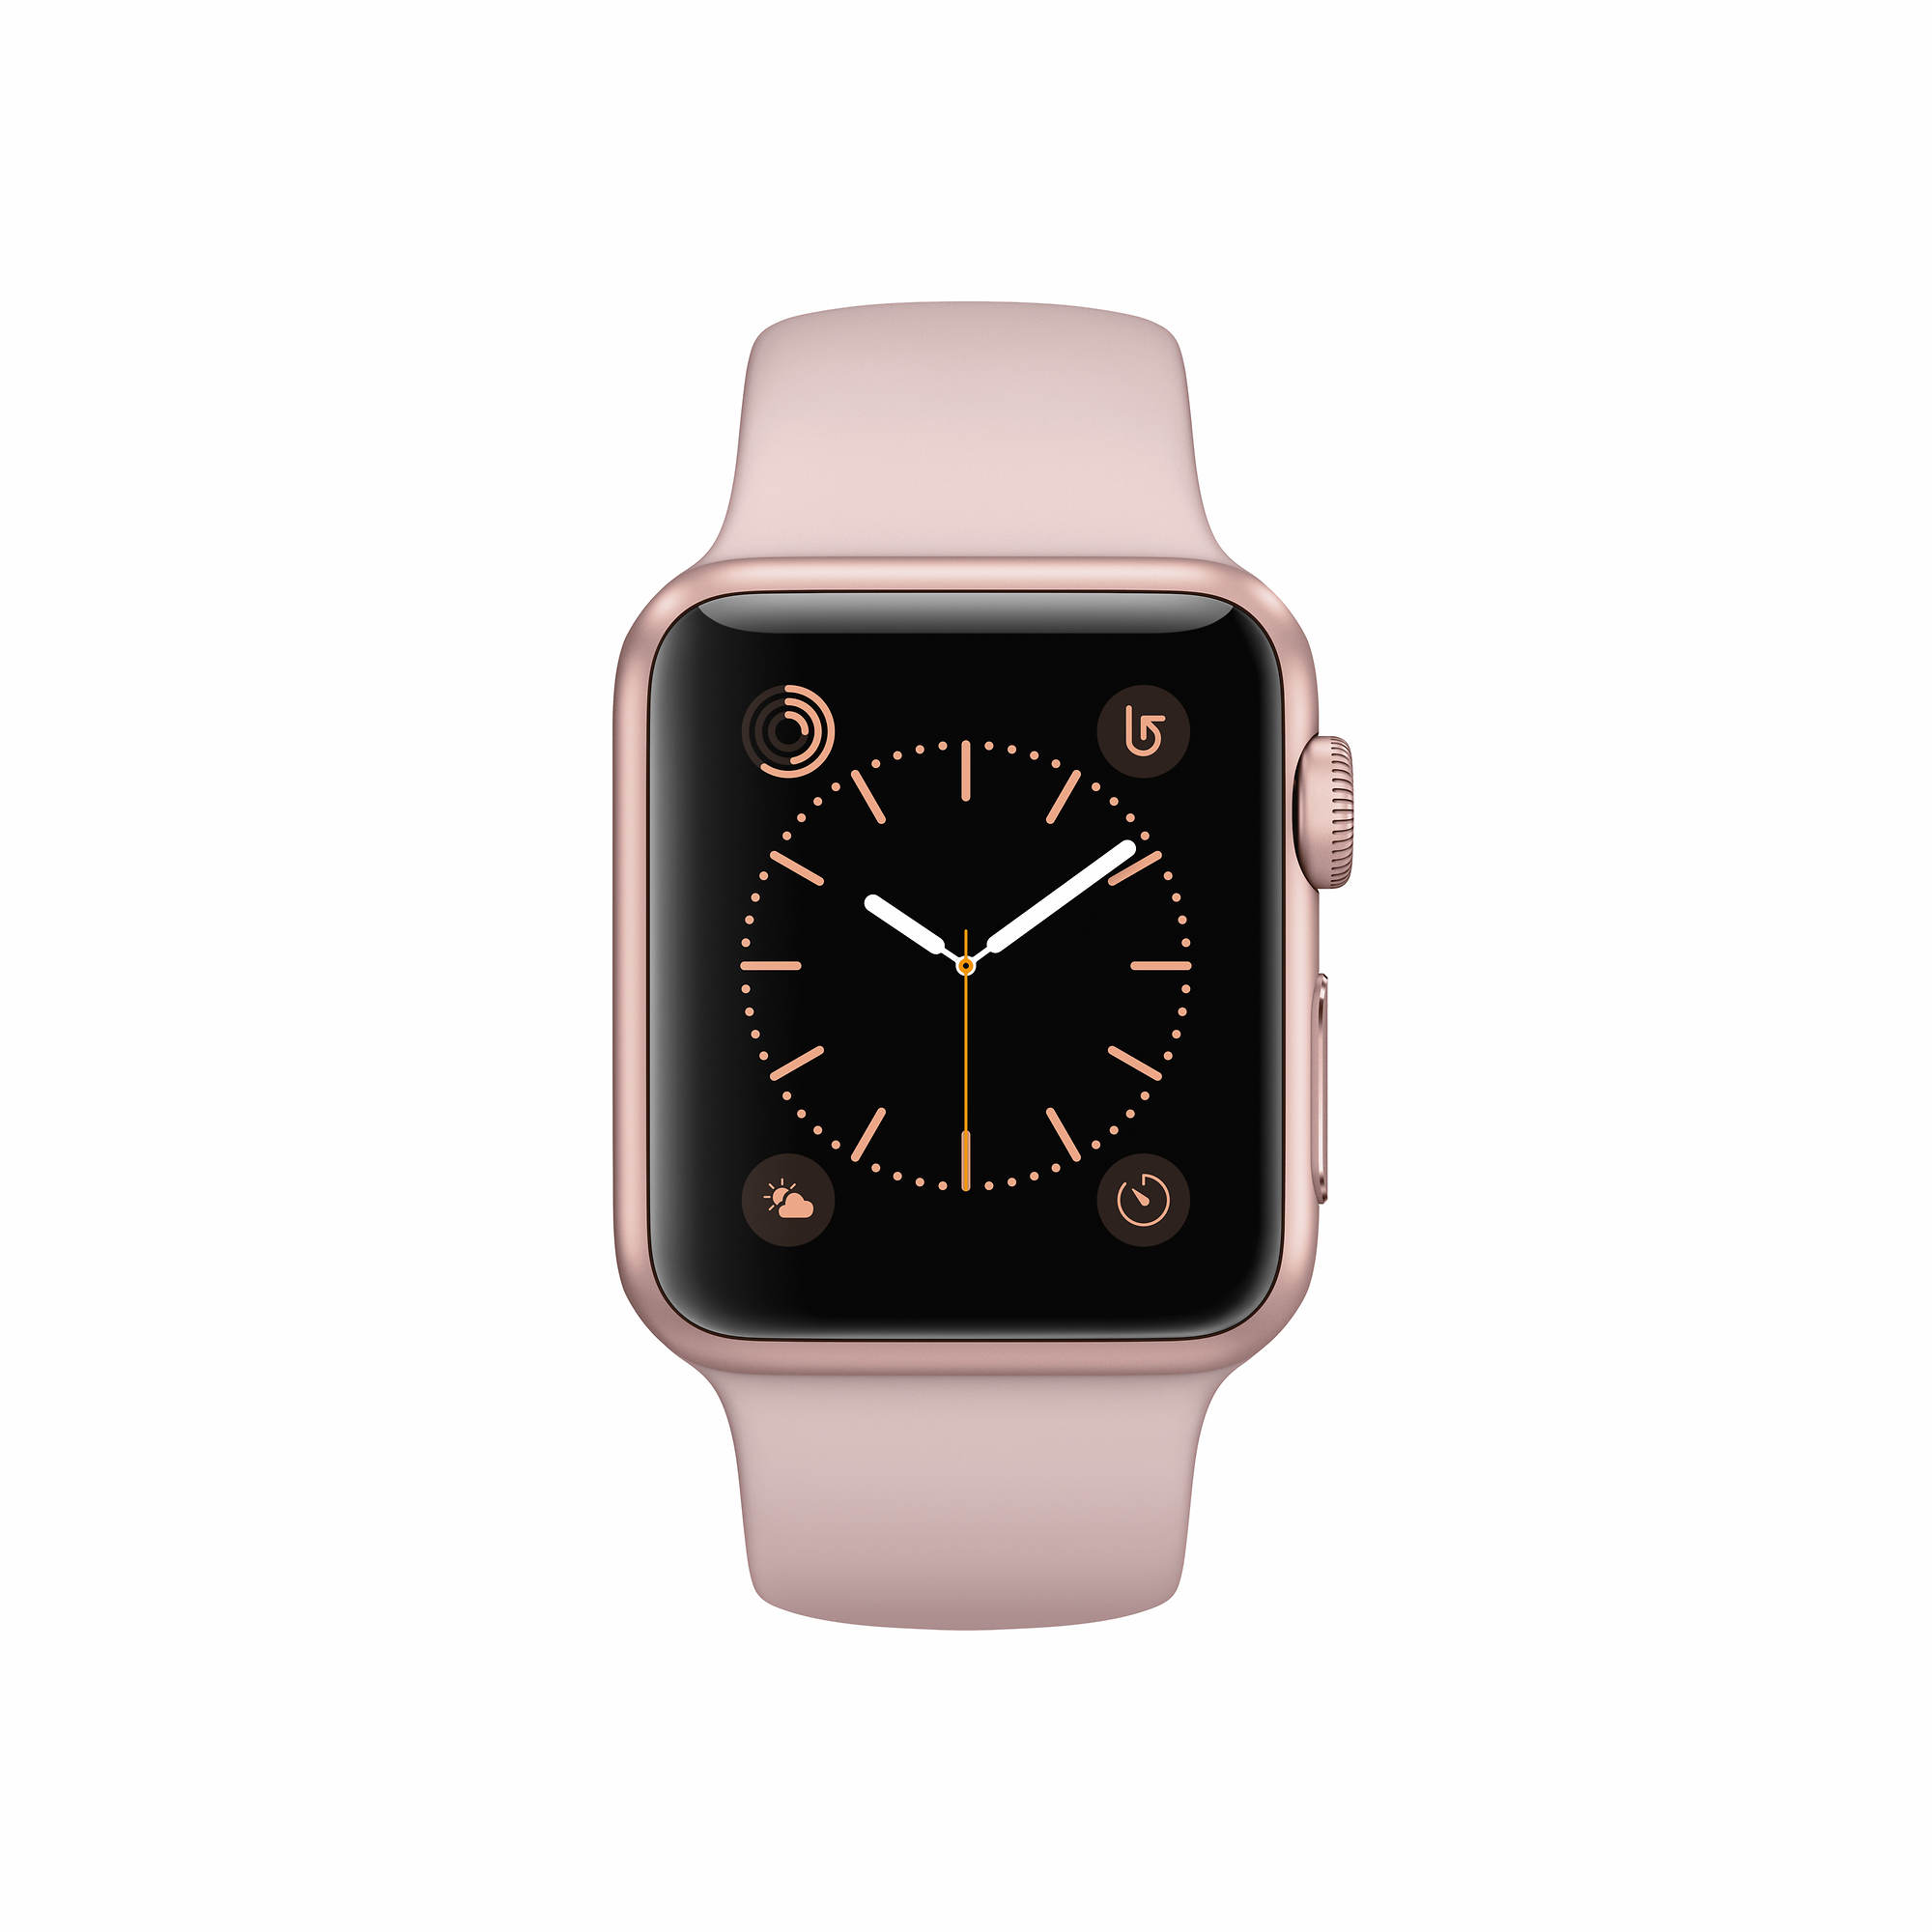 Apple Watch Series 1 with Rose Gold Aluminum Case, 38mm - Pink Sand Sport Band